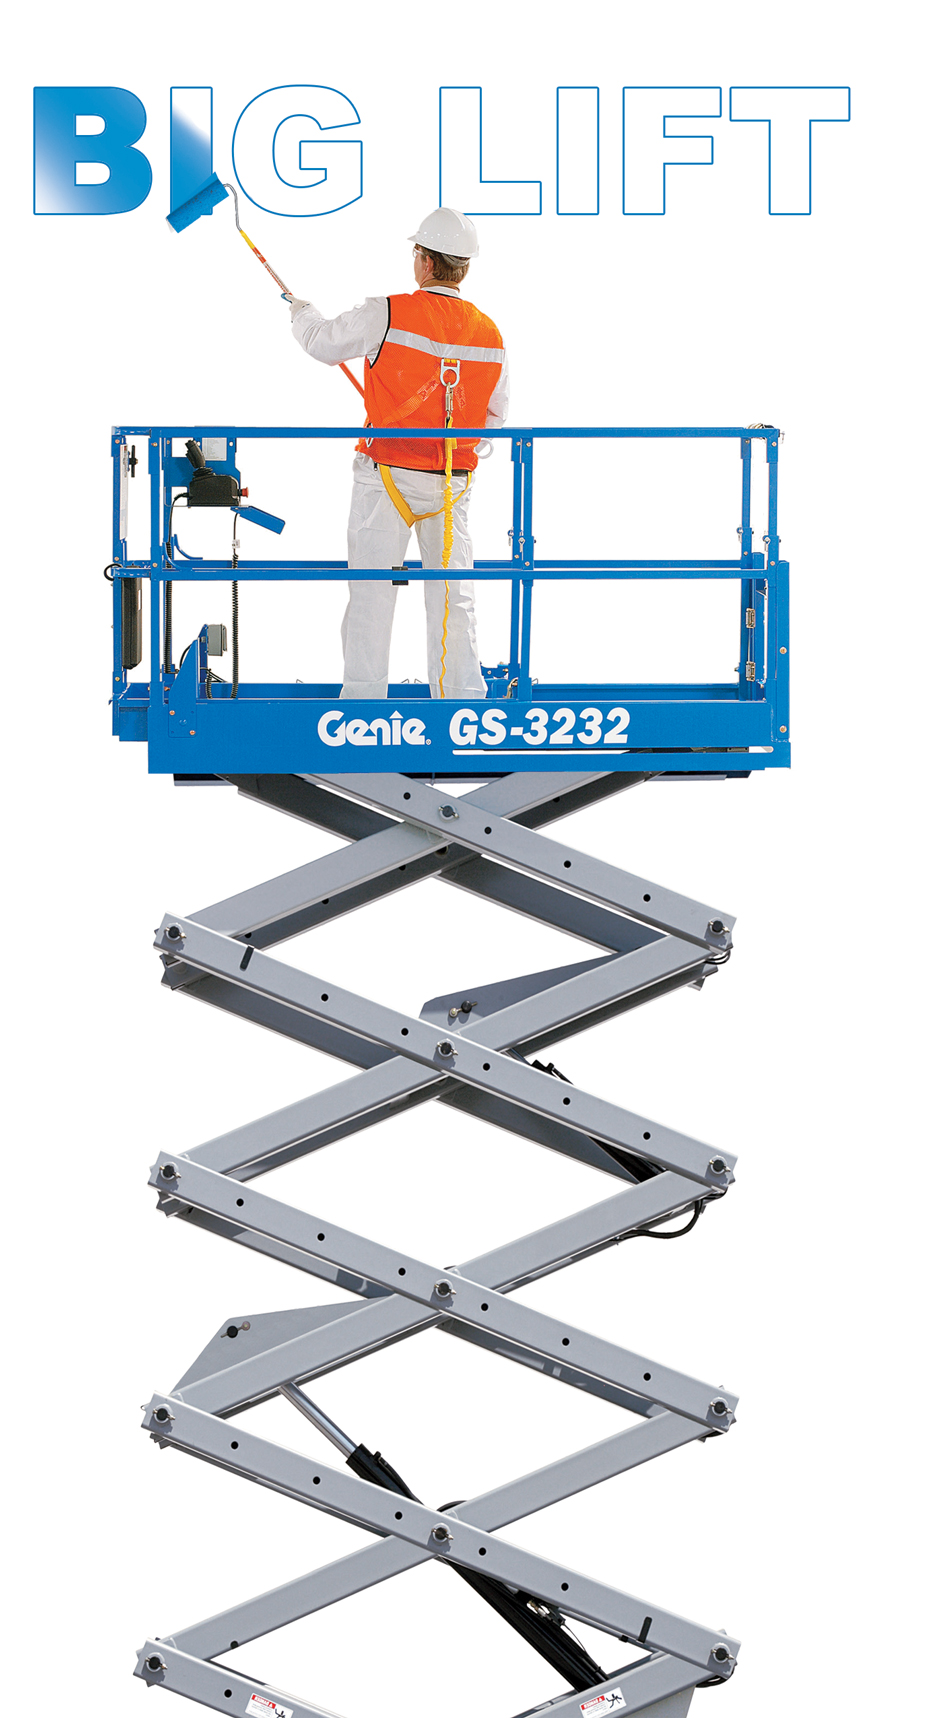 big lift genie gs-3232 scissor lift australia machine industrial construction painting